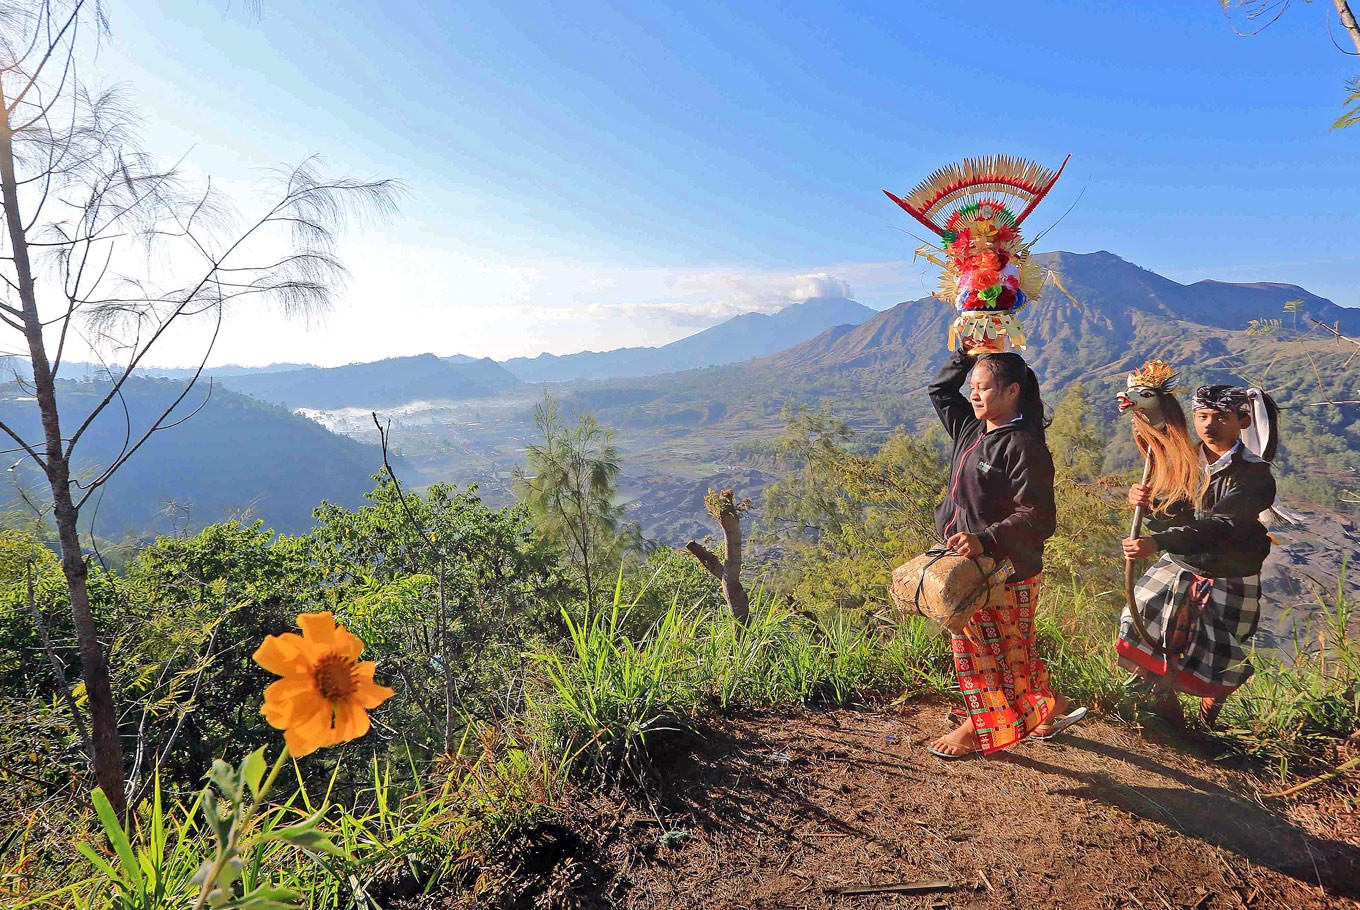 En-route: Two performers of the sacred Sanghyang Jaran dance walk along a hilly path on the slope of Mount Batur. The picture was captured by Kochiana.